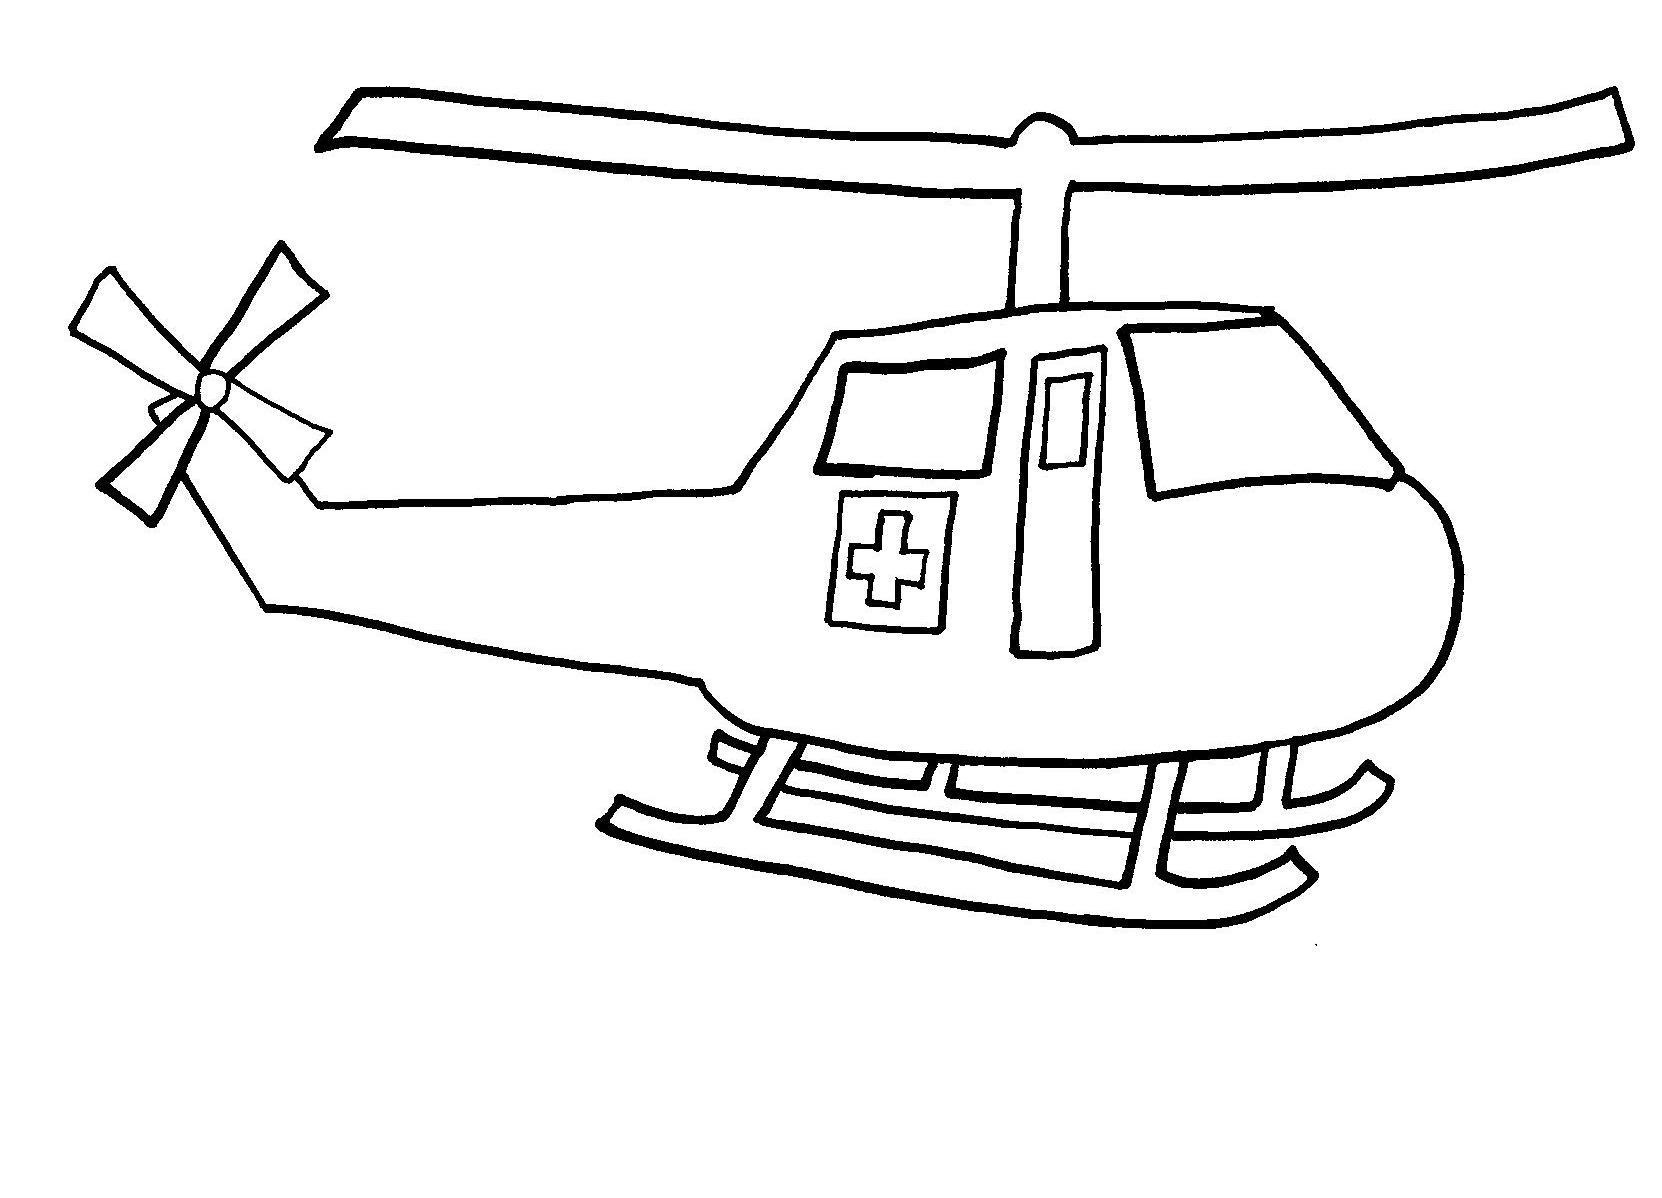 helicopter and aeroplane games with Helicopter Coloring Pages on Fabulous And Beautiful Aeroplane likewise Gta vice city cheats guide 664191 in addition Battat Wooden Vehicles Choose From 10 Different Types also Airplane Transparent   Clipart additionally Airplane Coloring Pages.